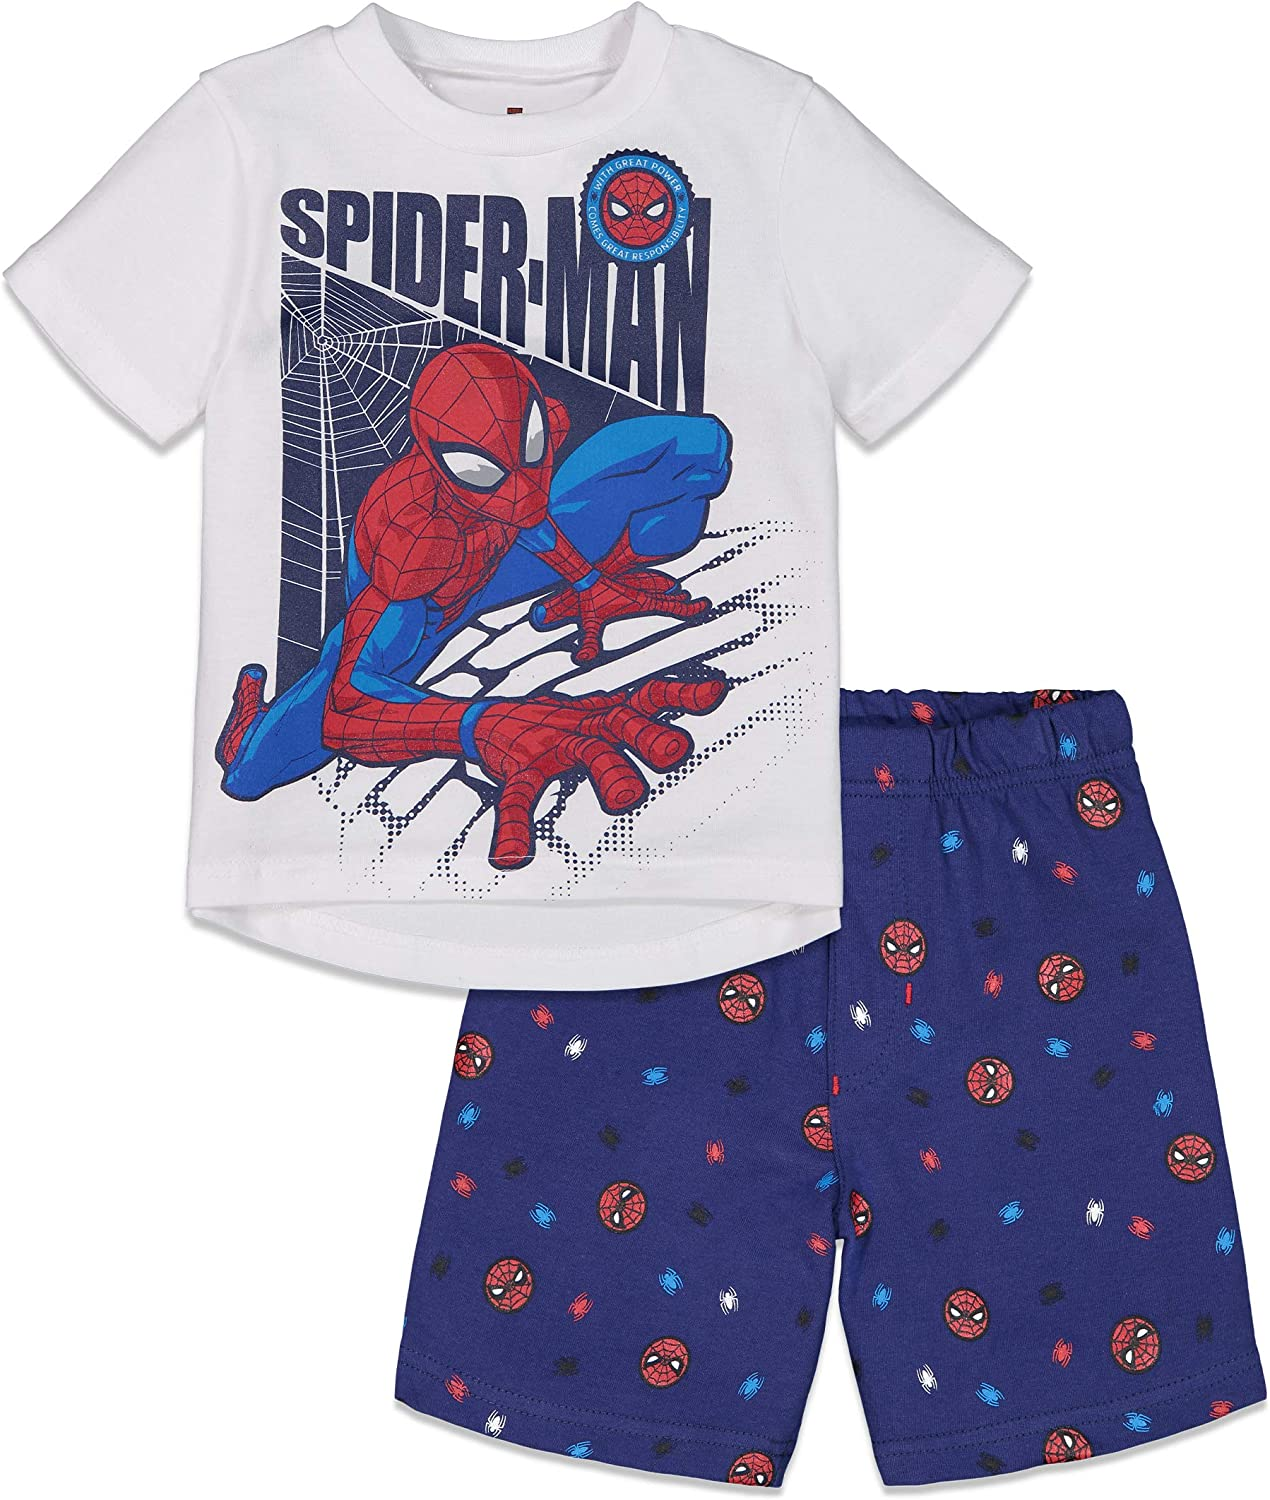 Marvel Avengers Spiderman T-Shirt and French Terry Shorts Set